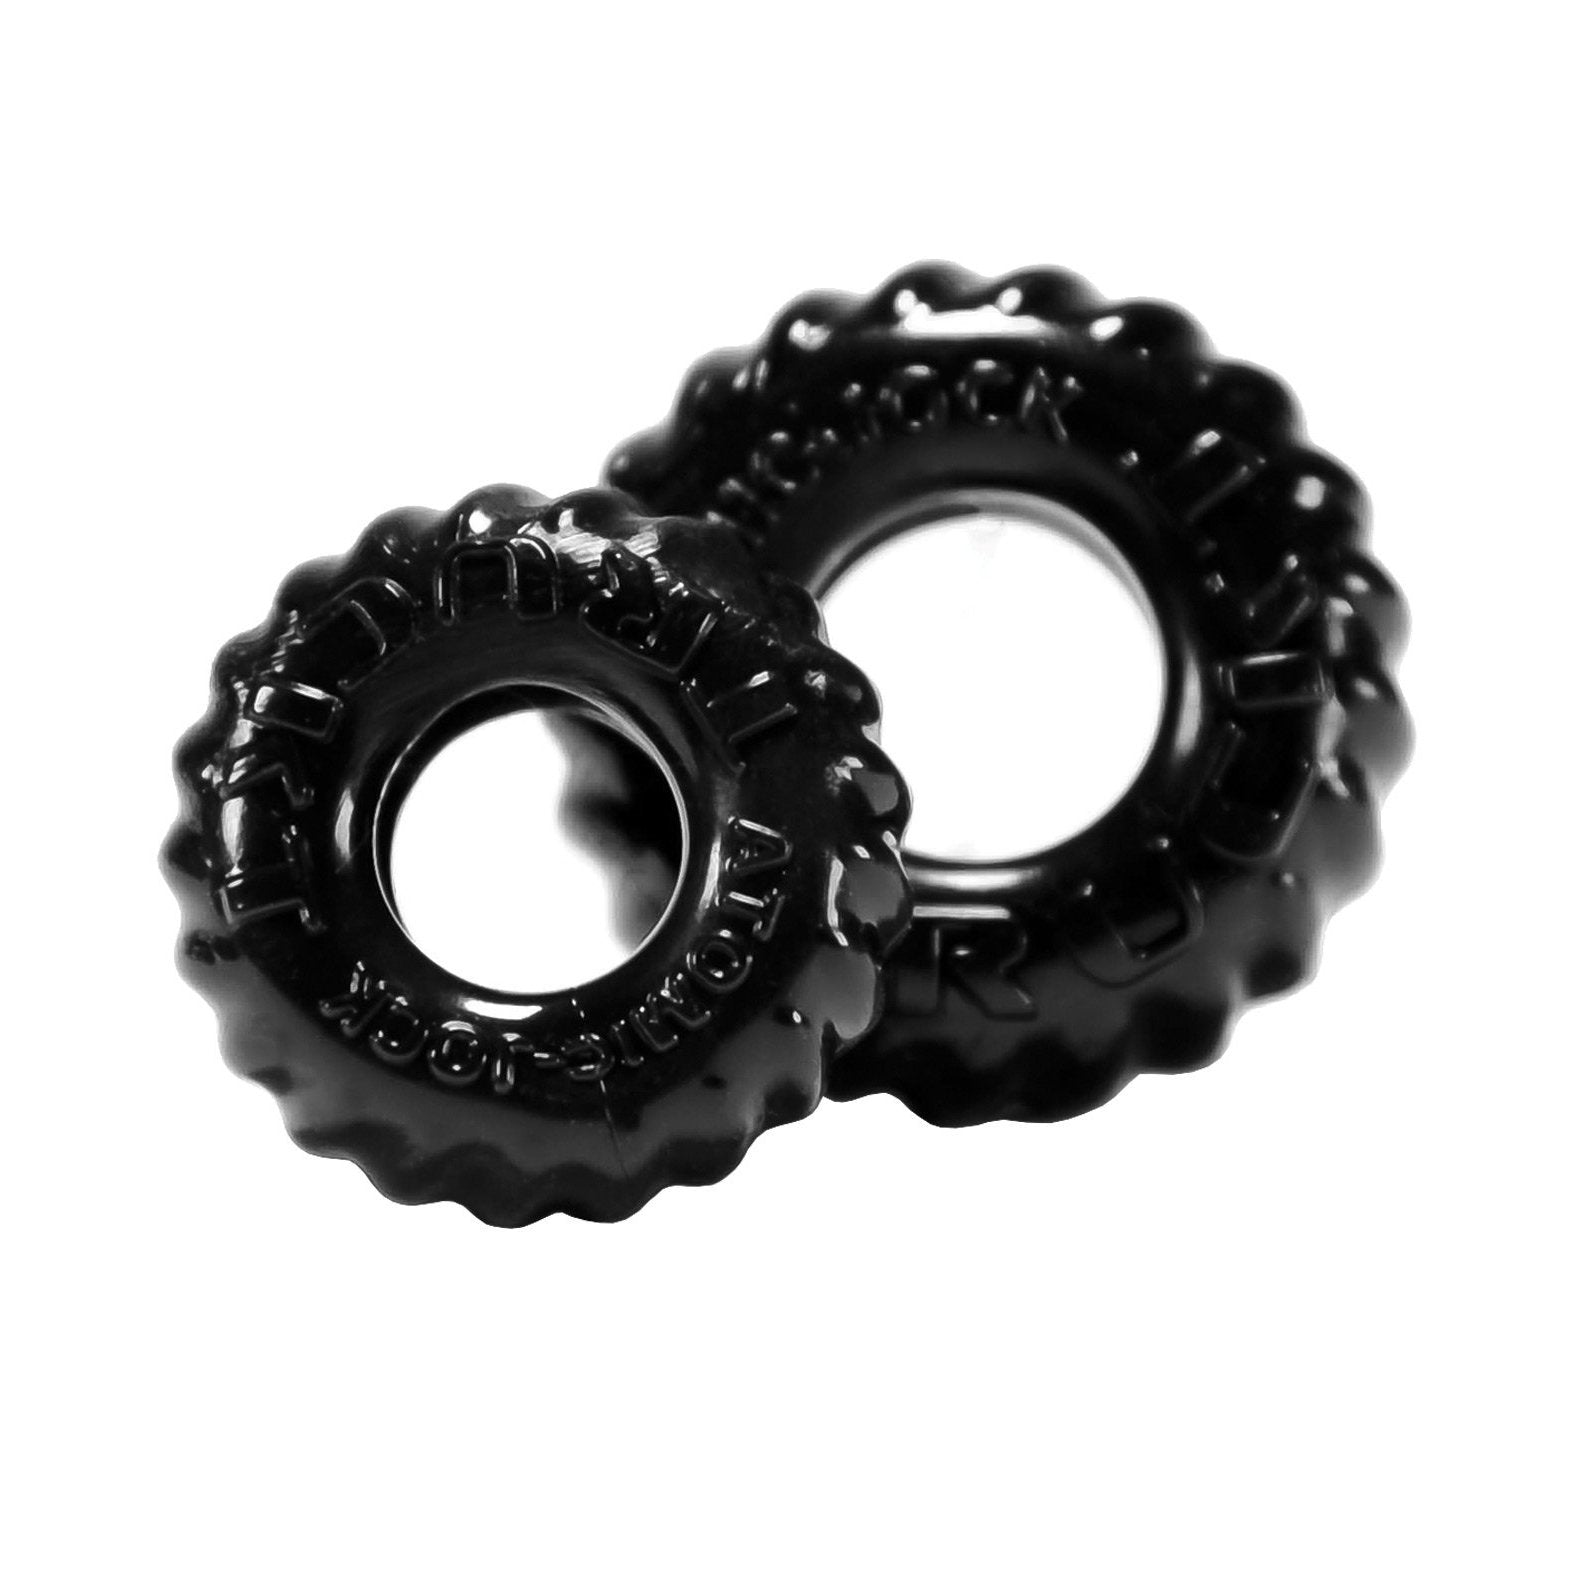 Oxballs TruckT Cock & Ball Ring - Pack of 2 - Gay Men's Sex Toys - Adam's Toy Box